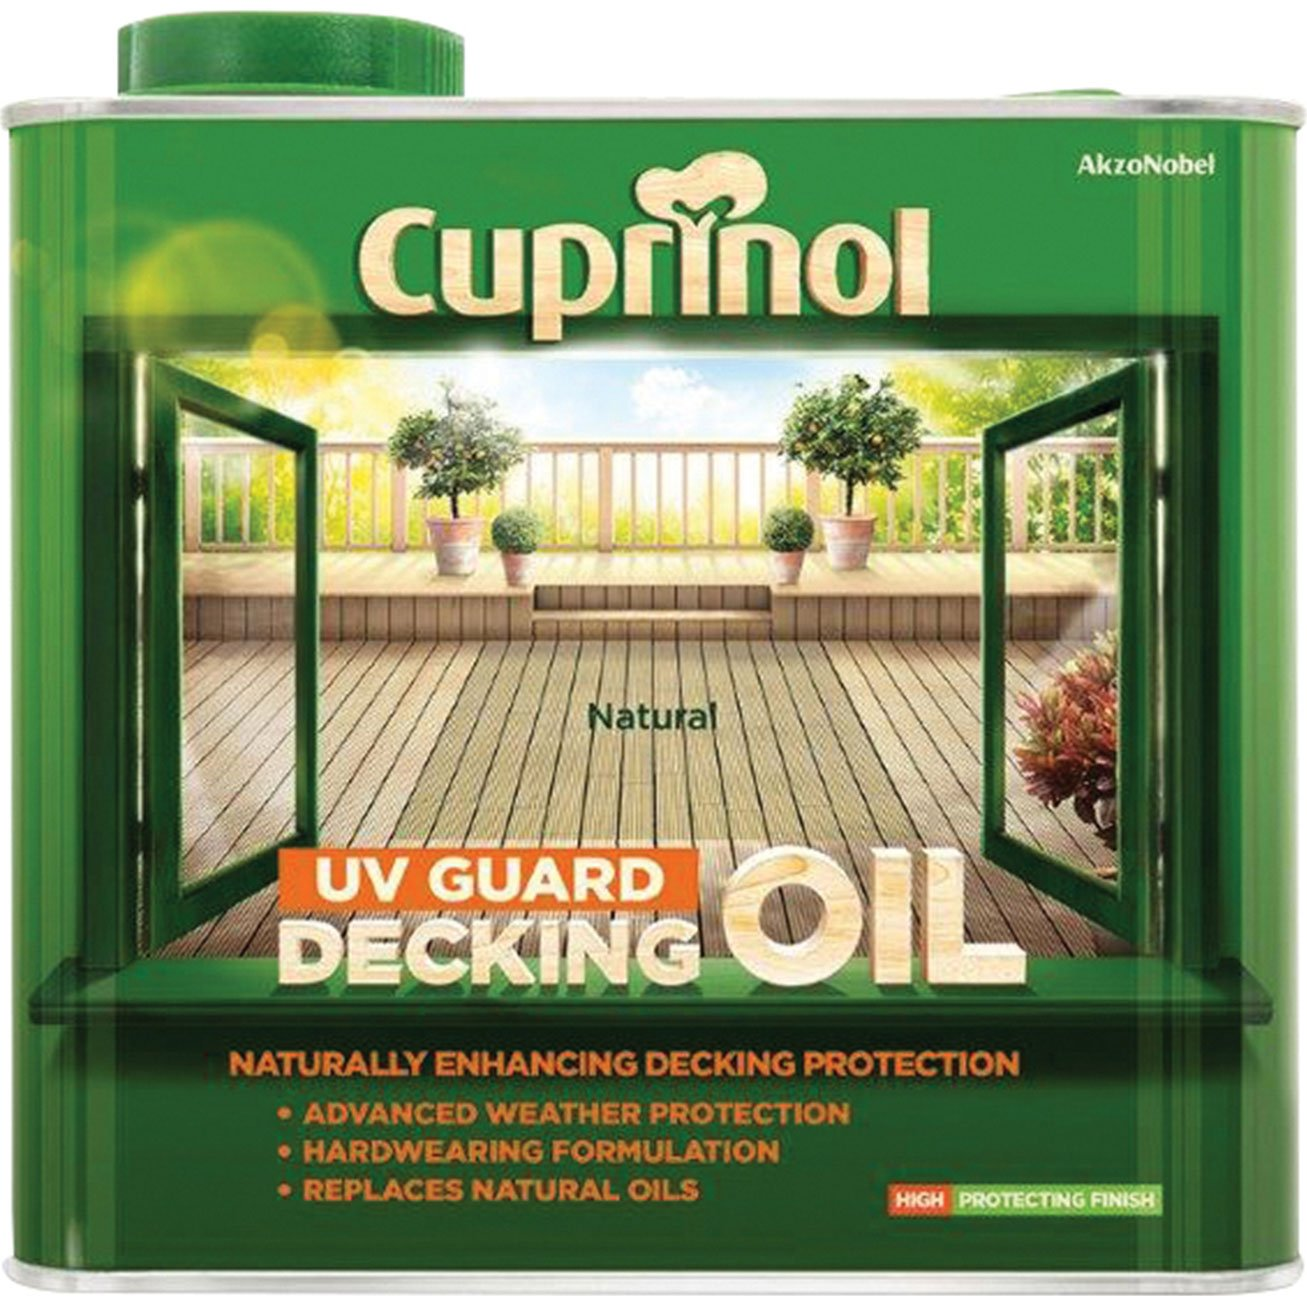 Cuprinol UV Guard Decking Oil Natural 5L